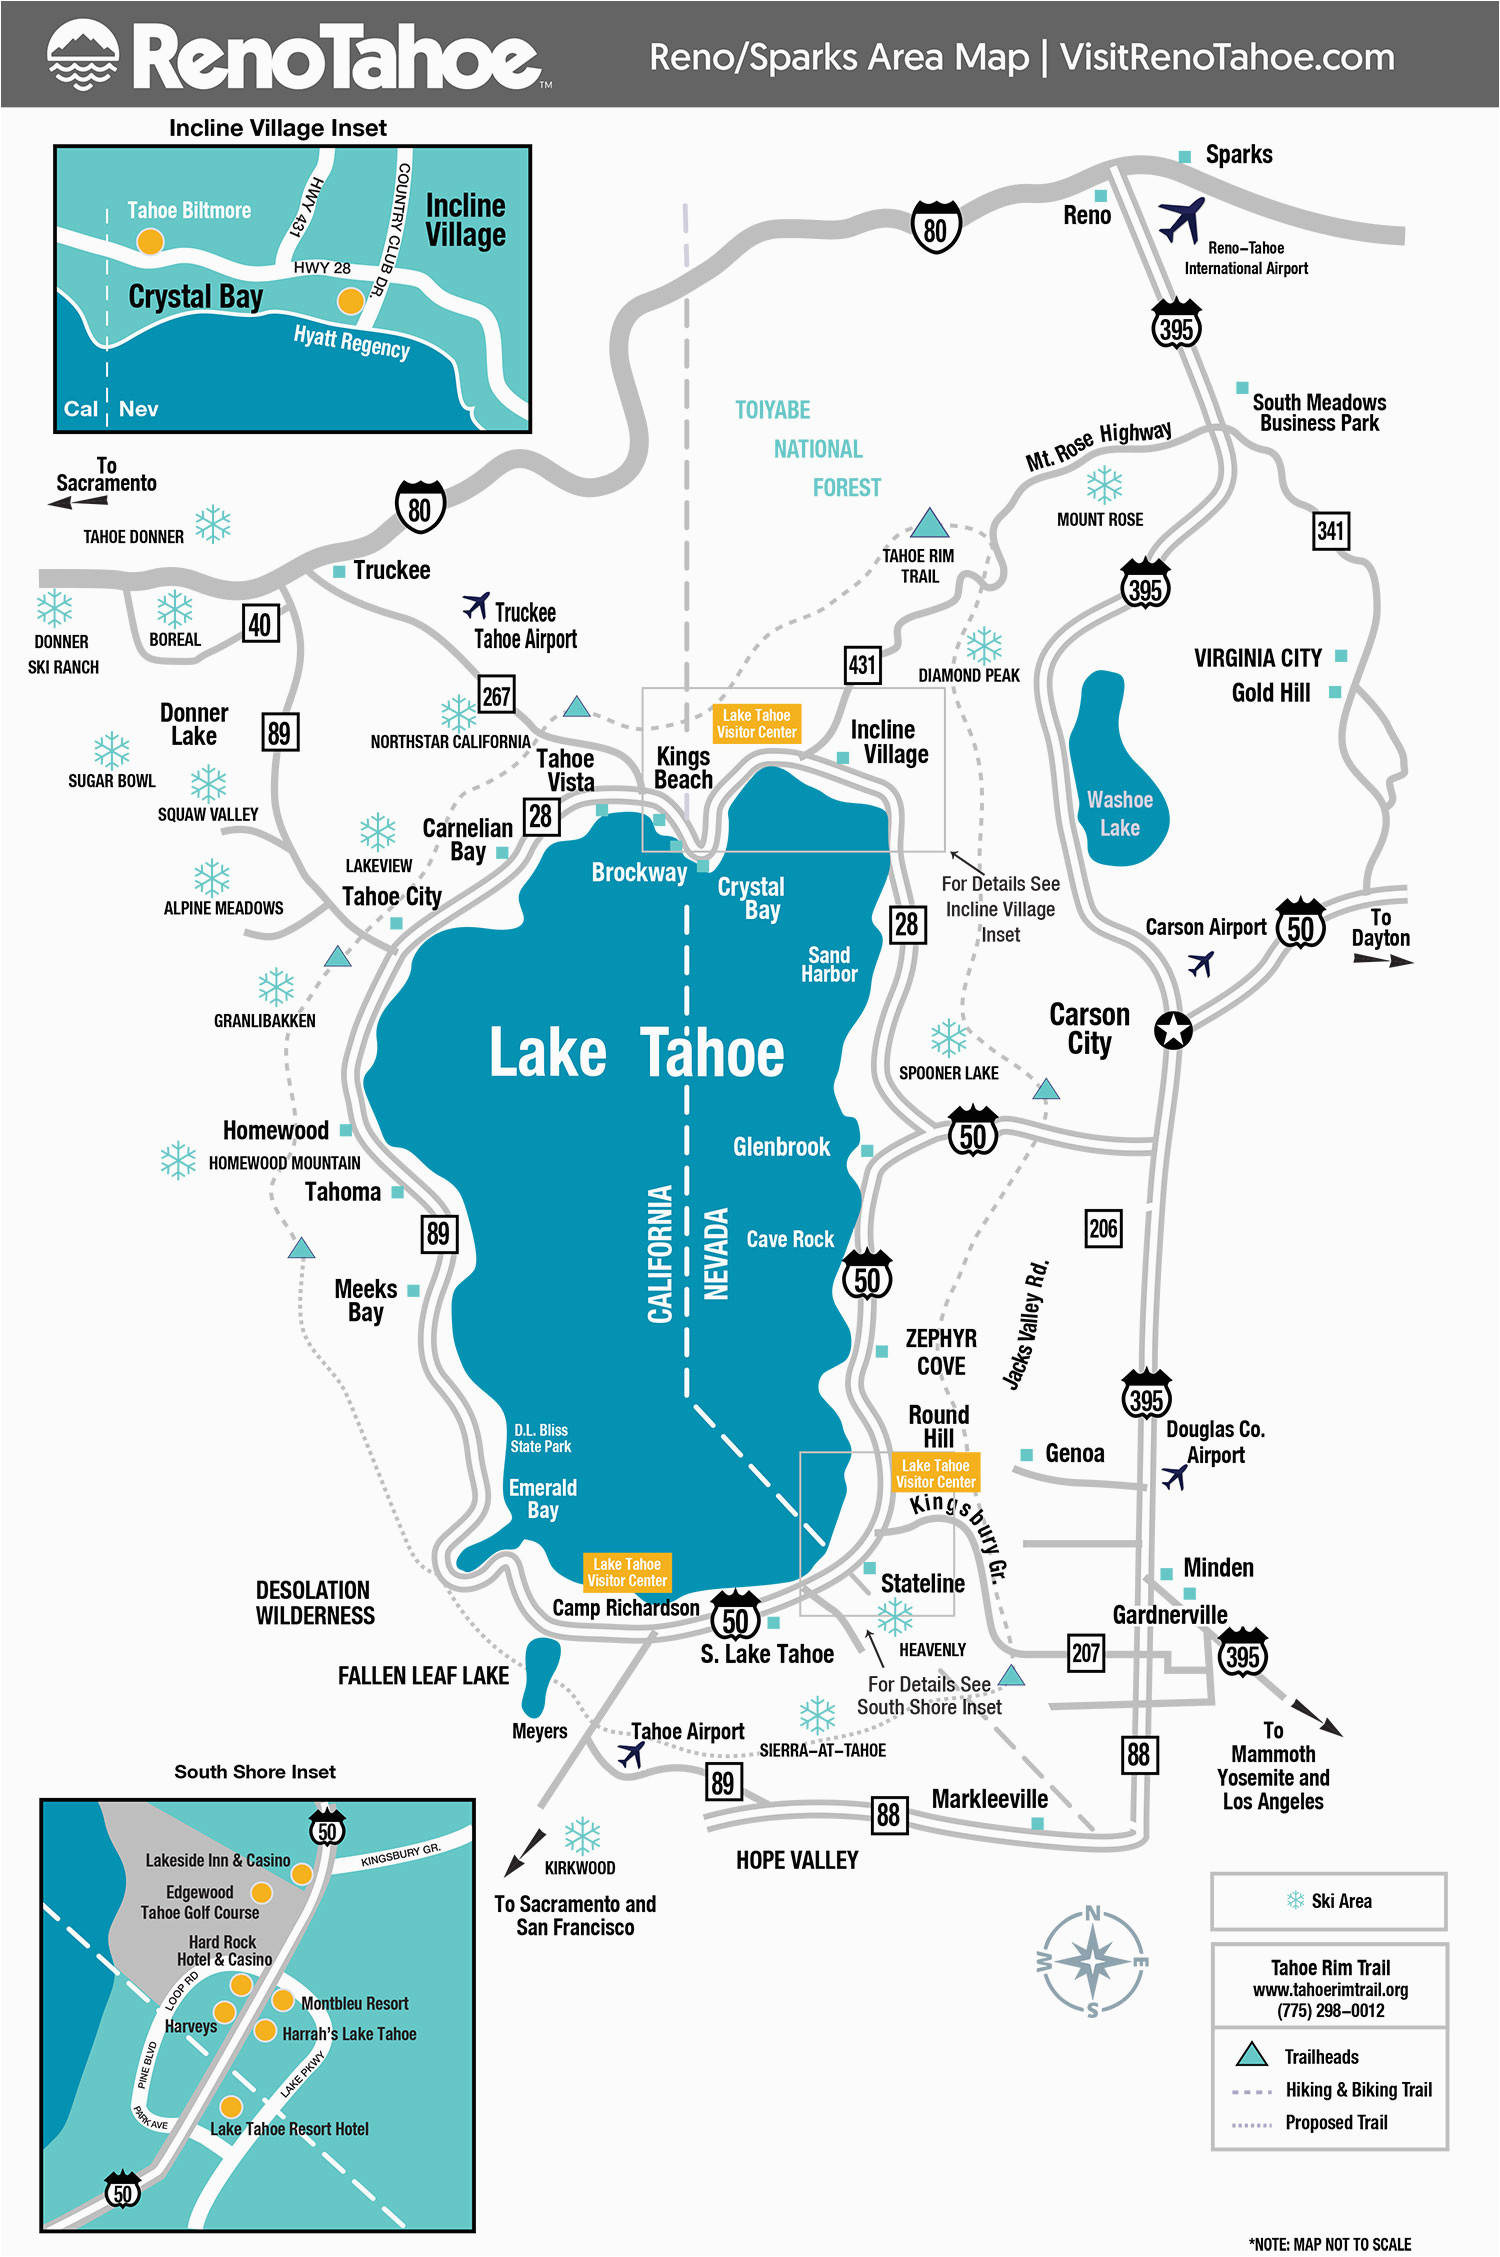 Northern California Ski Resorts Map Lake Tahoe Maps and Reno ... on lake tahoe golf course map, lake tahoe mountain map, lake tahoe winter map, northstar resort tahoe map, lake tahoe casinos, lake tahoe snow, lake tahoe mapguide, hyatt regency lake tahoe resort map, lake tahoe points of interest map, squaw valley resort map, california ski areas map, lake tahoe skiing, lake tahoe national forest map, ski bc map, lake tahoe granlibakken resort, lake tahoe tourist map, lake tahoe sierra resort, lake tahoe airport map, christmas valley lake tahoe map, lake tahoe tee shirt,